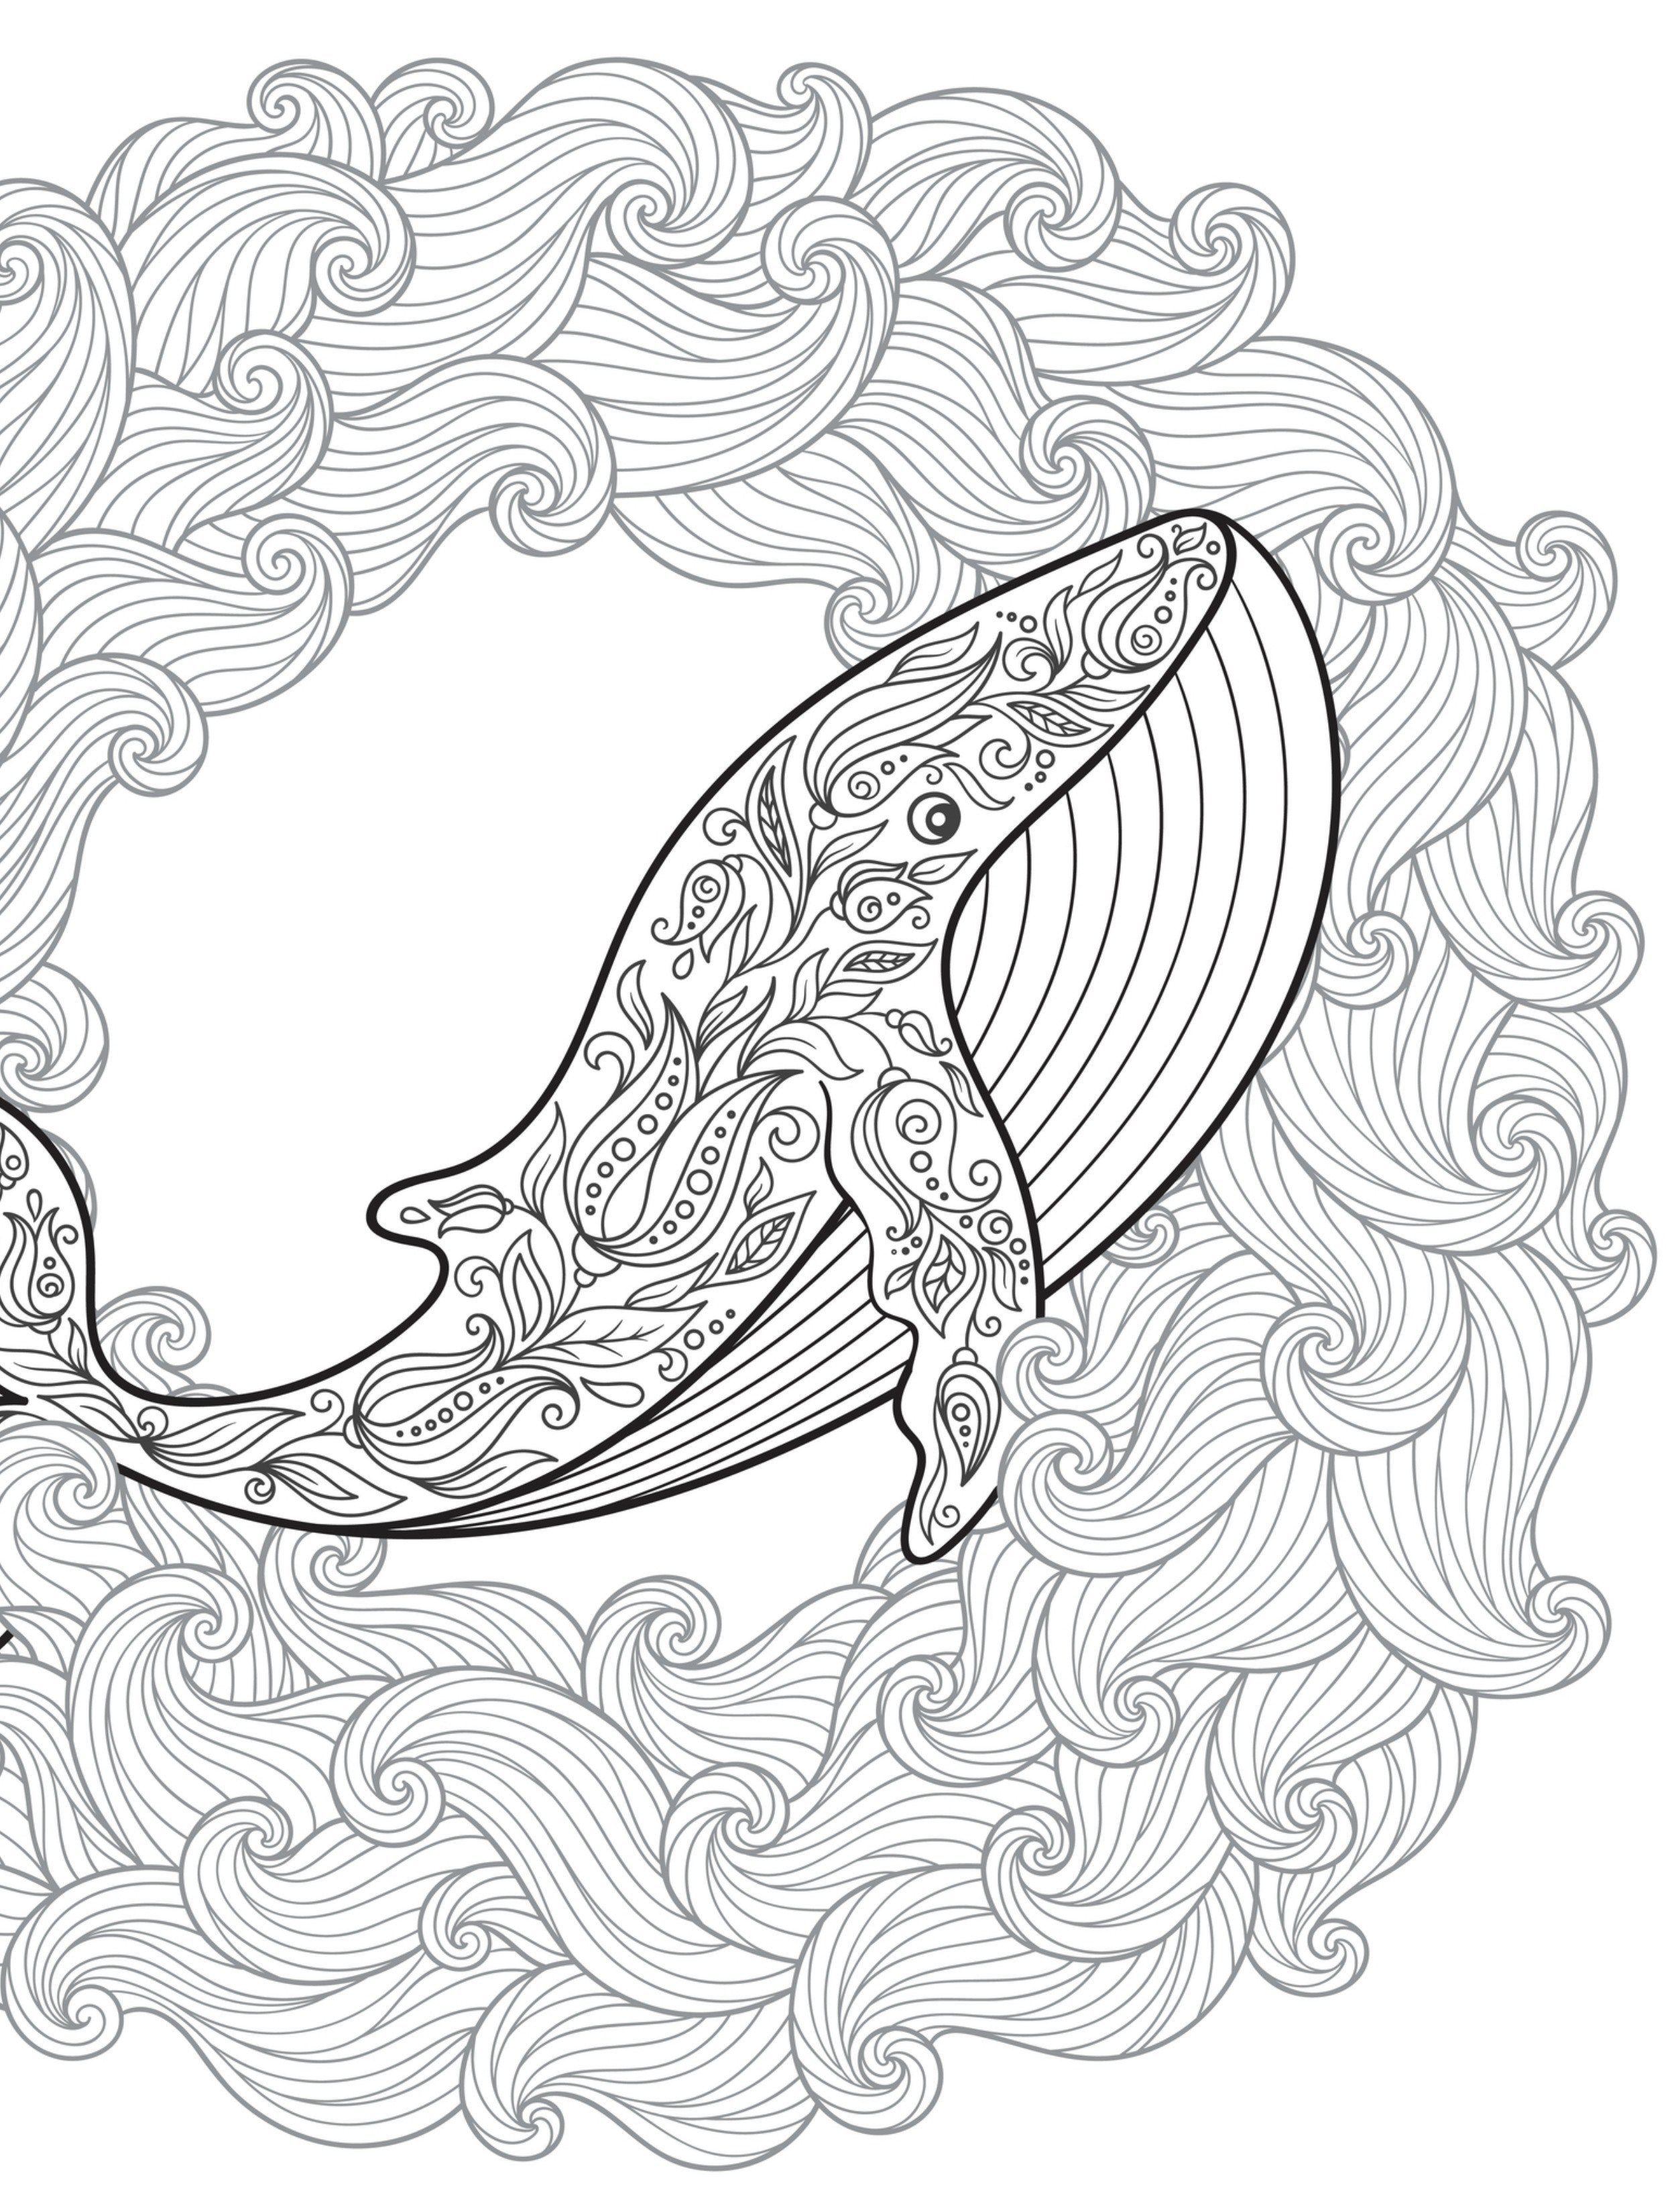 Whimsical designs coloring book - 18 Absurdly Whimsical Adult Coloring Pages